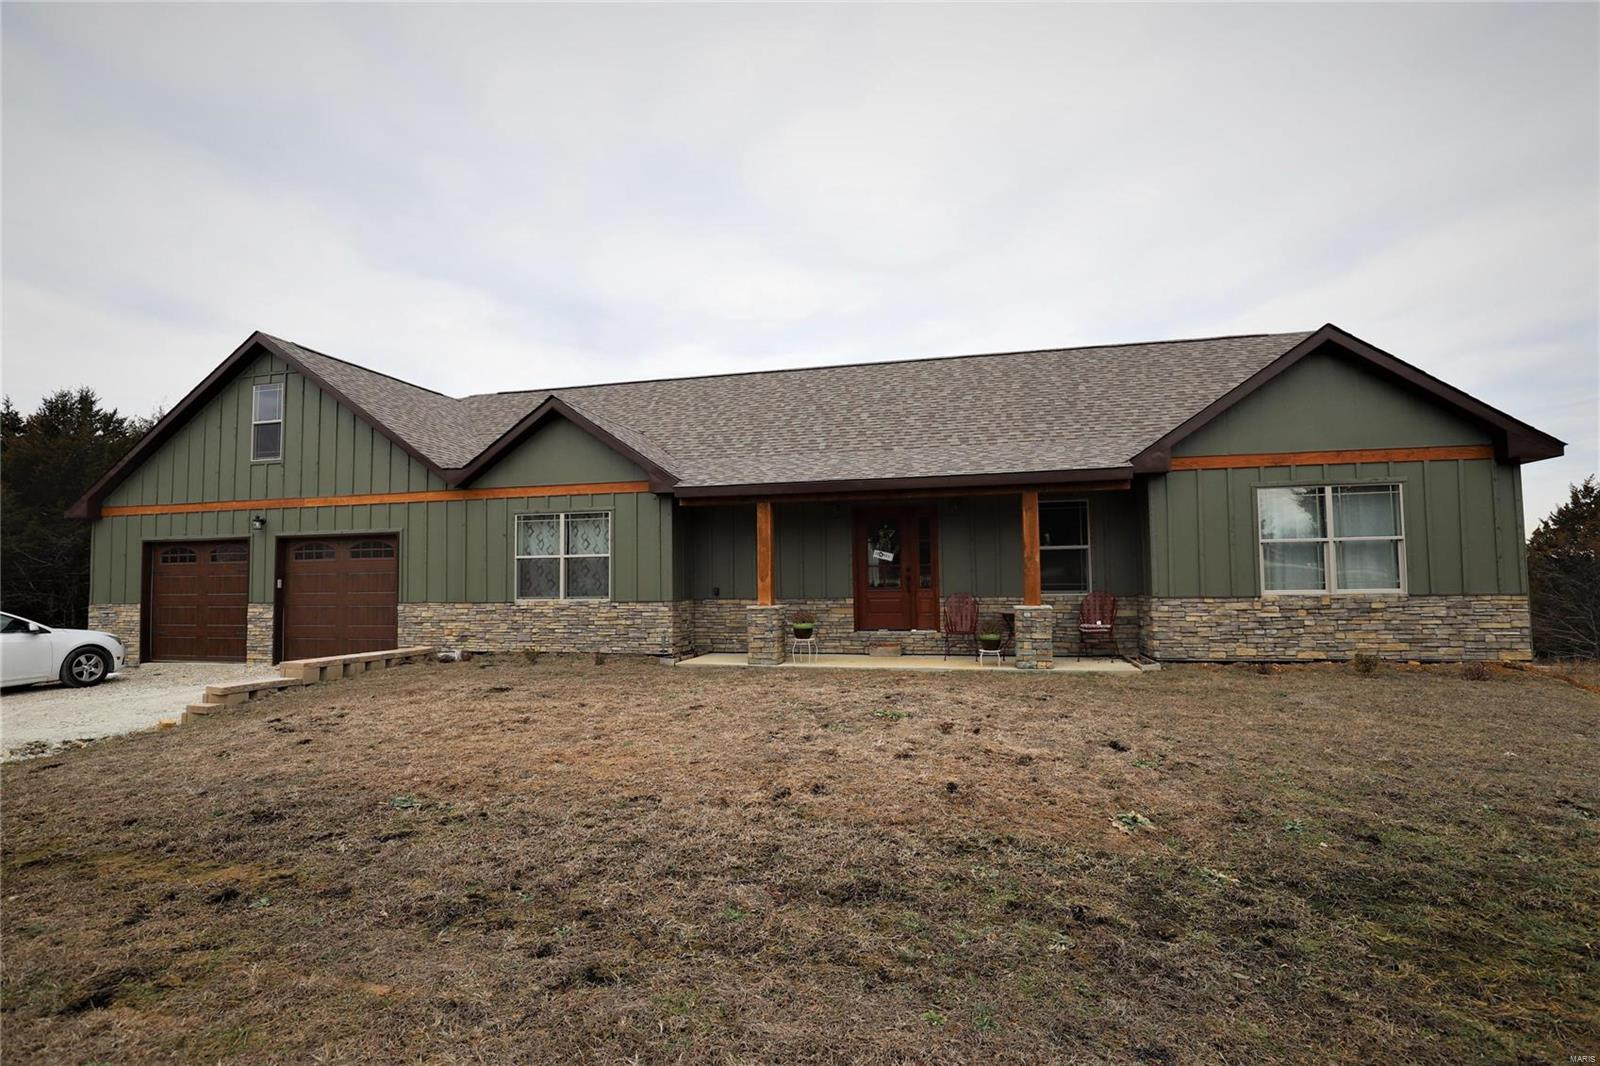 14912 Private Drive, County Rd 1124 #14912 Property Photo - St James, MO real estate listing